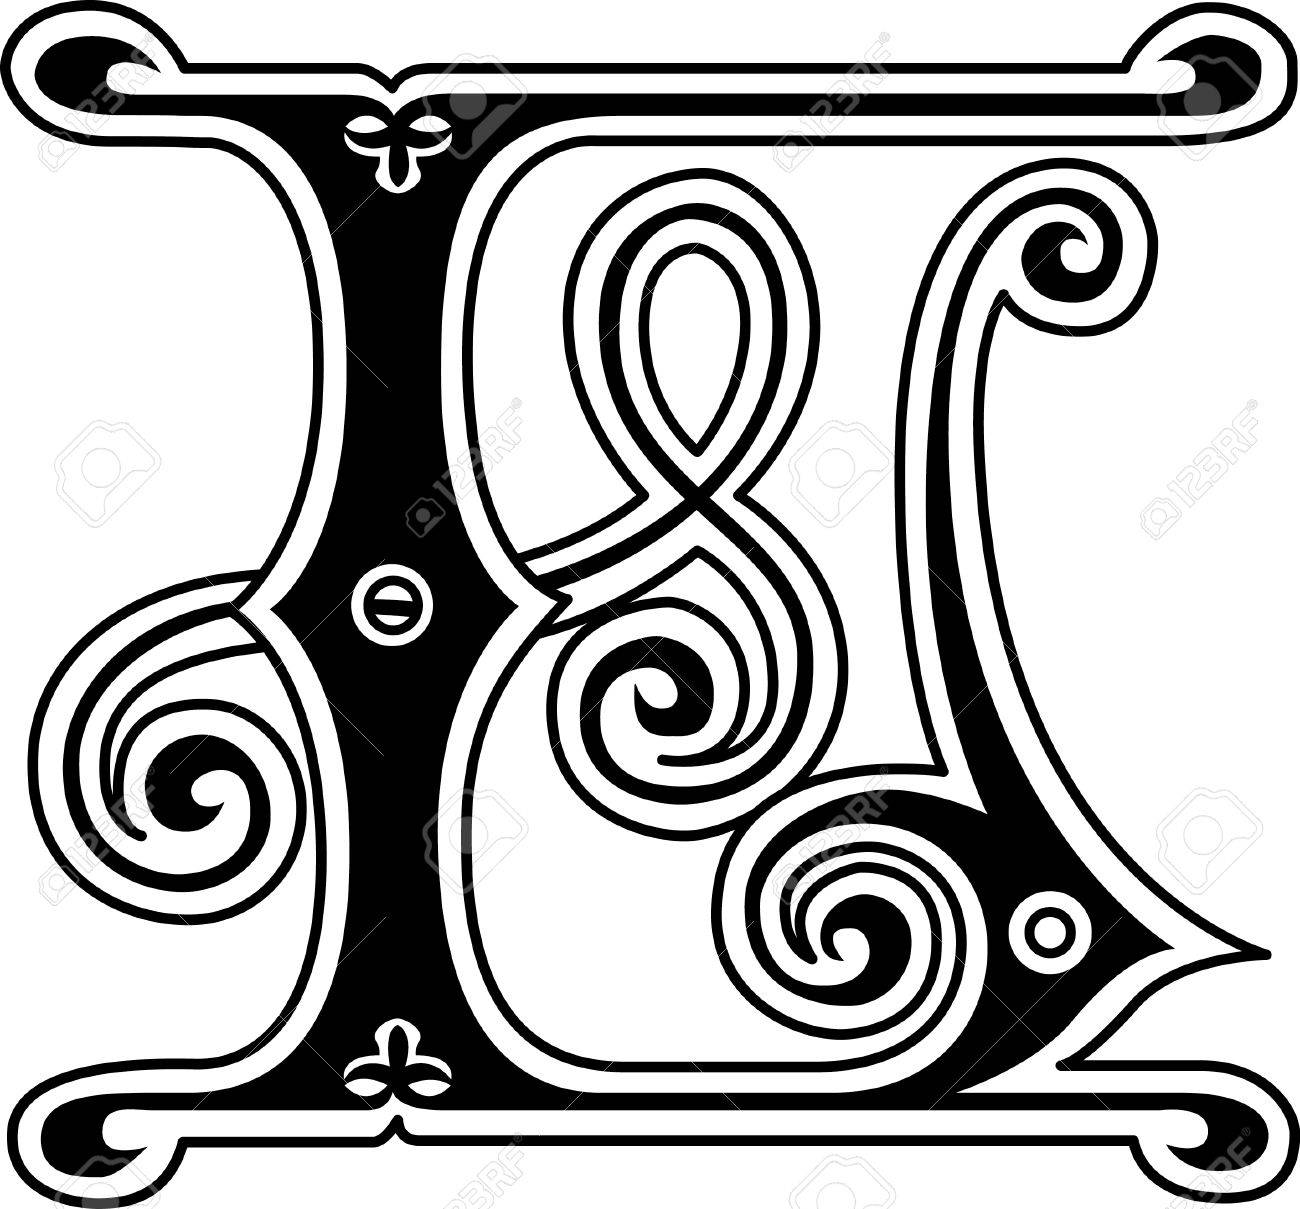 Classic Style English Alphabet Letter L Monochrome Stock Vector